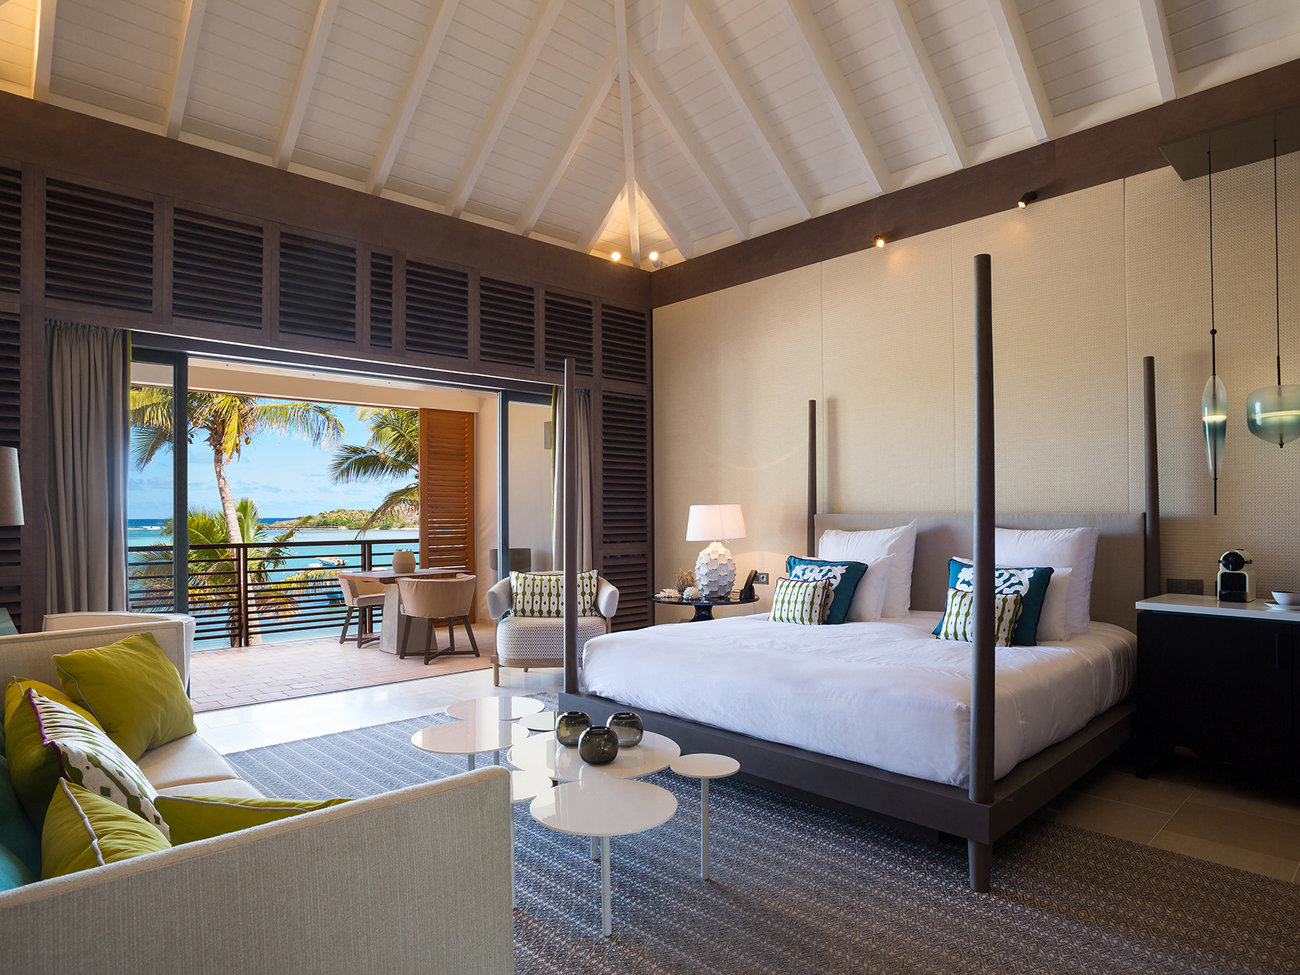 Le Barthélemy Hotel & Spa in St. Barts